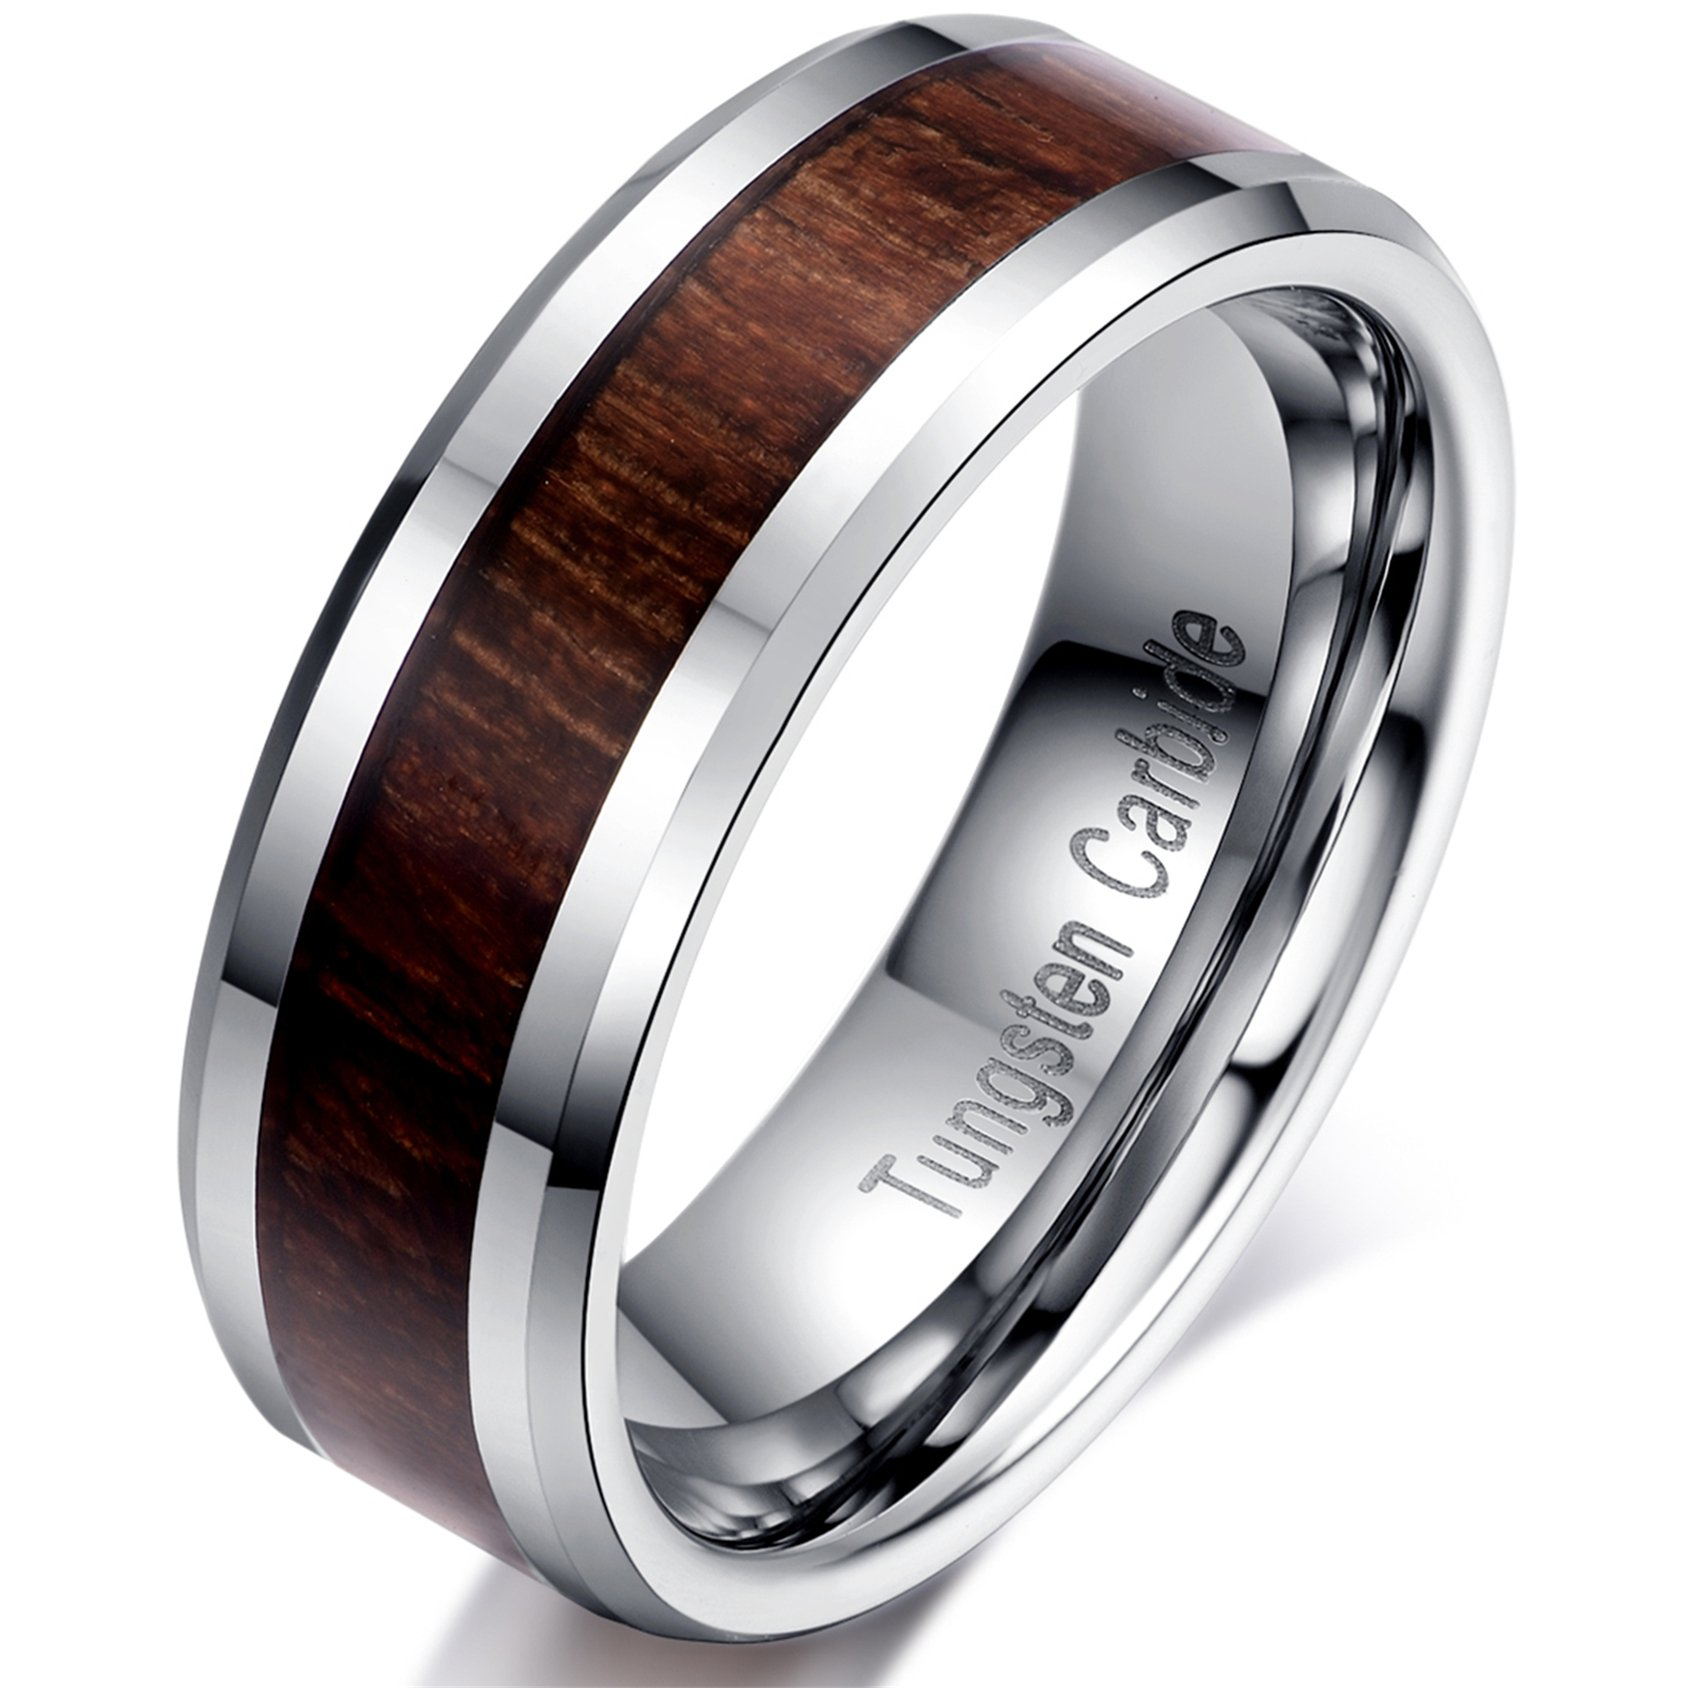 6mm Silver Tungsten Carbide Wood Inlay Men Women Vintage Wedding Ring Engagement Promise Band Comfort Fit Size 7.5